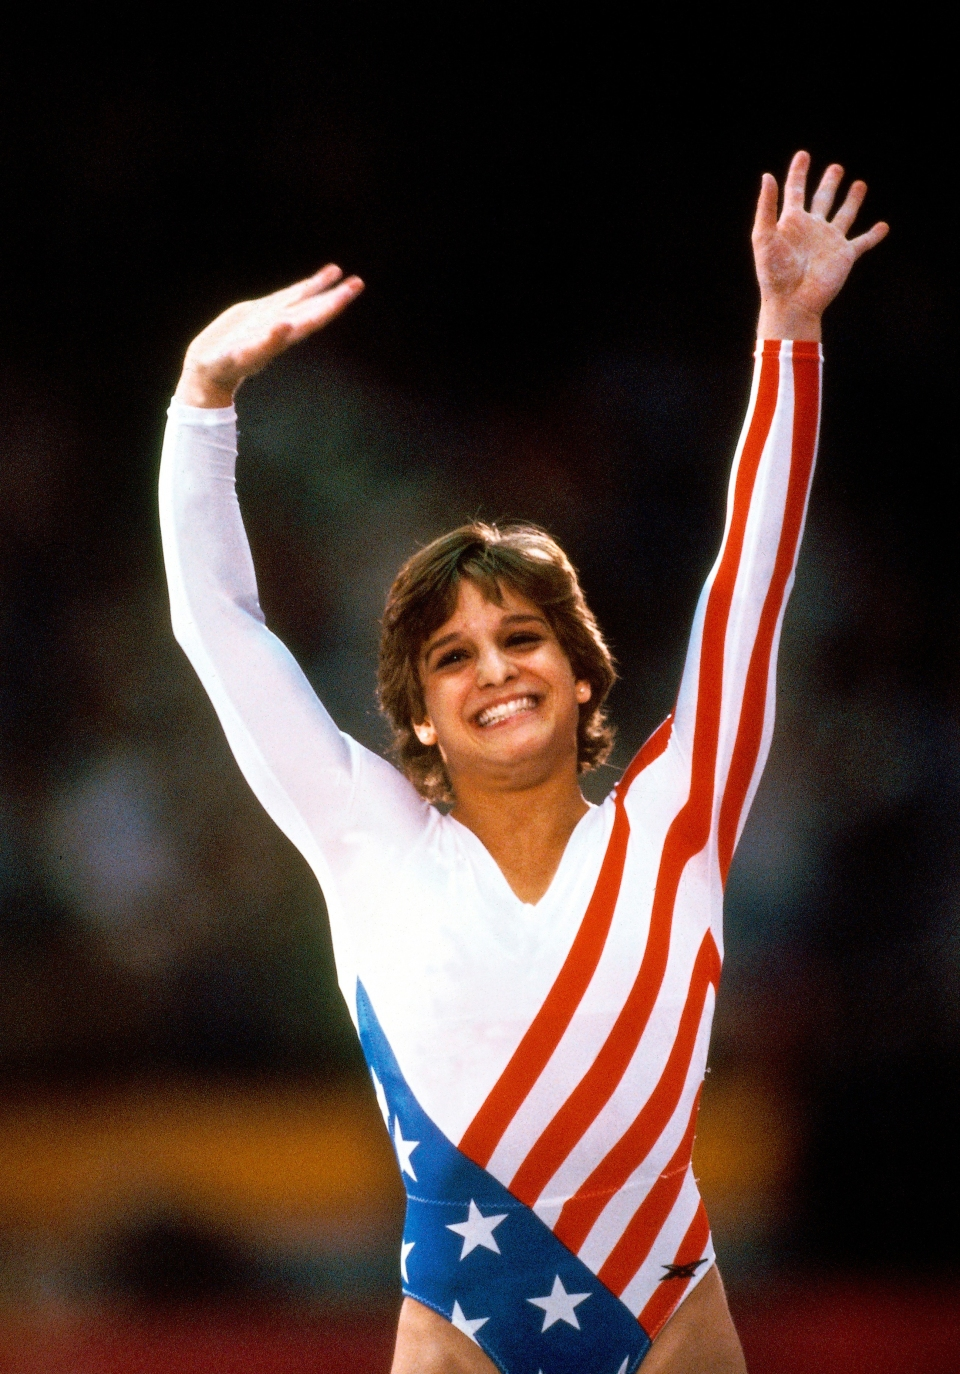 mary lou retton Contact mary lou retton's booking agent for speaker fees, appearance requests, endorsement costs, and manager info or call athletespeakers at 800-916-6008.